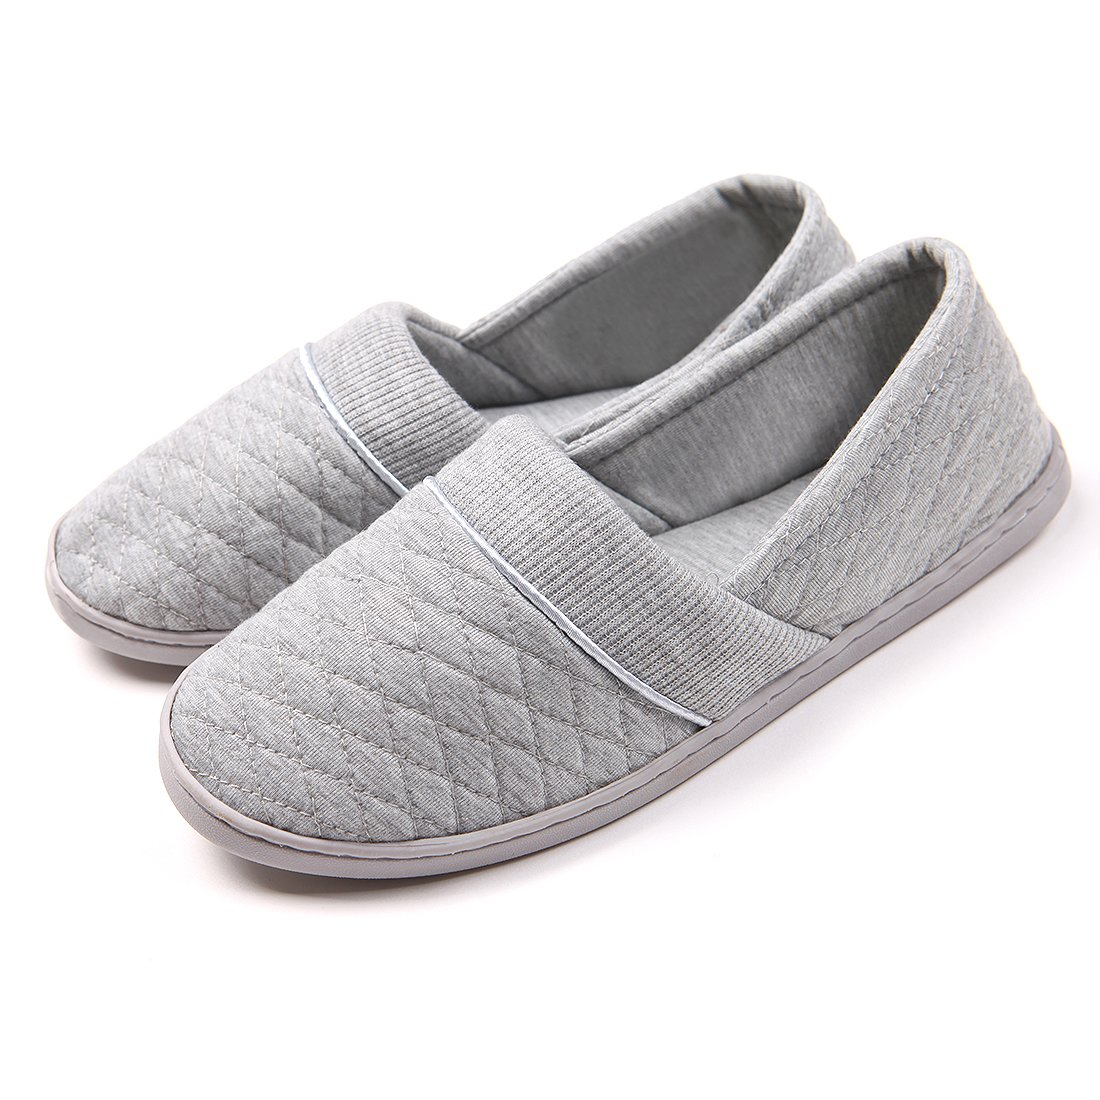 ChicNChic Women Comfort Cotton Soft Sole Indoor Slippers Anti-Slip House Shoes Grey 7 B(M) US